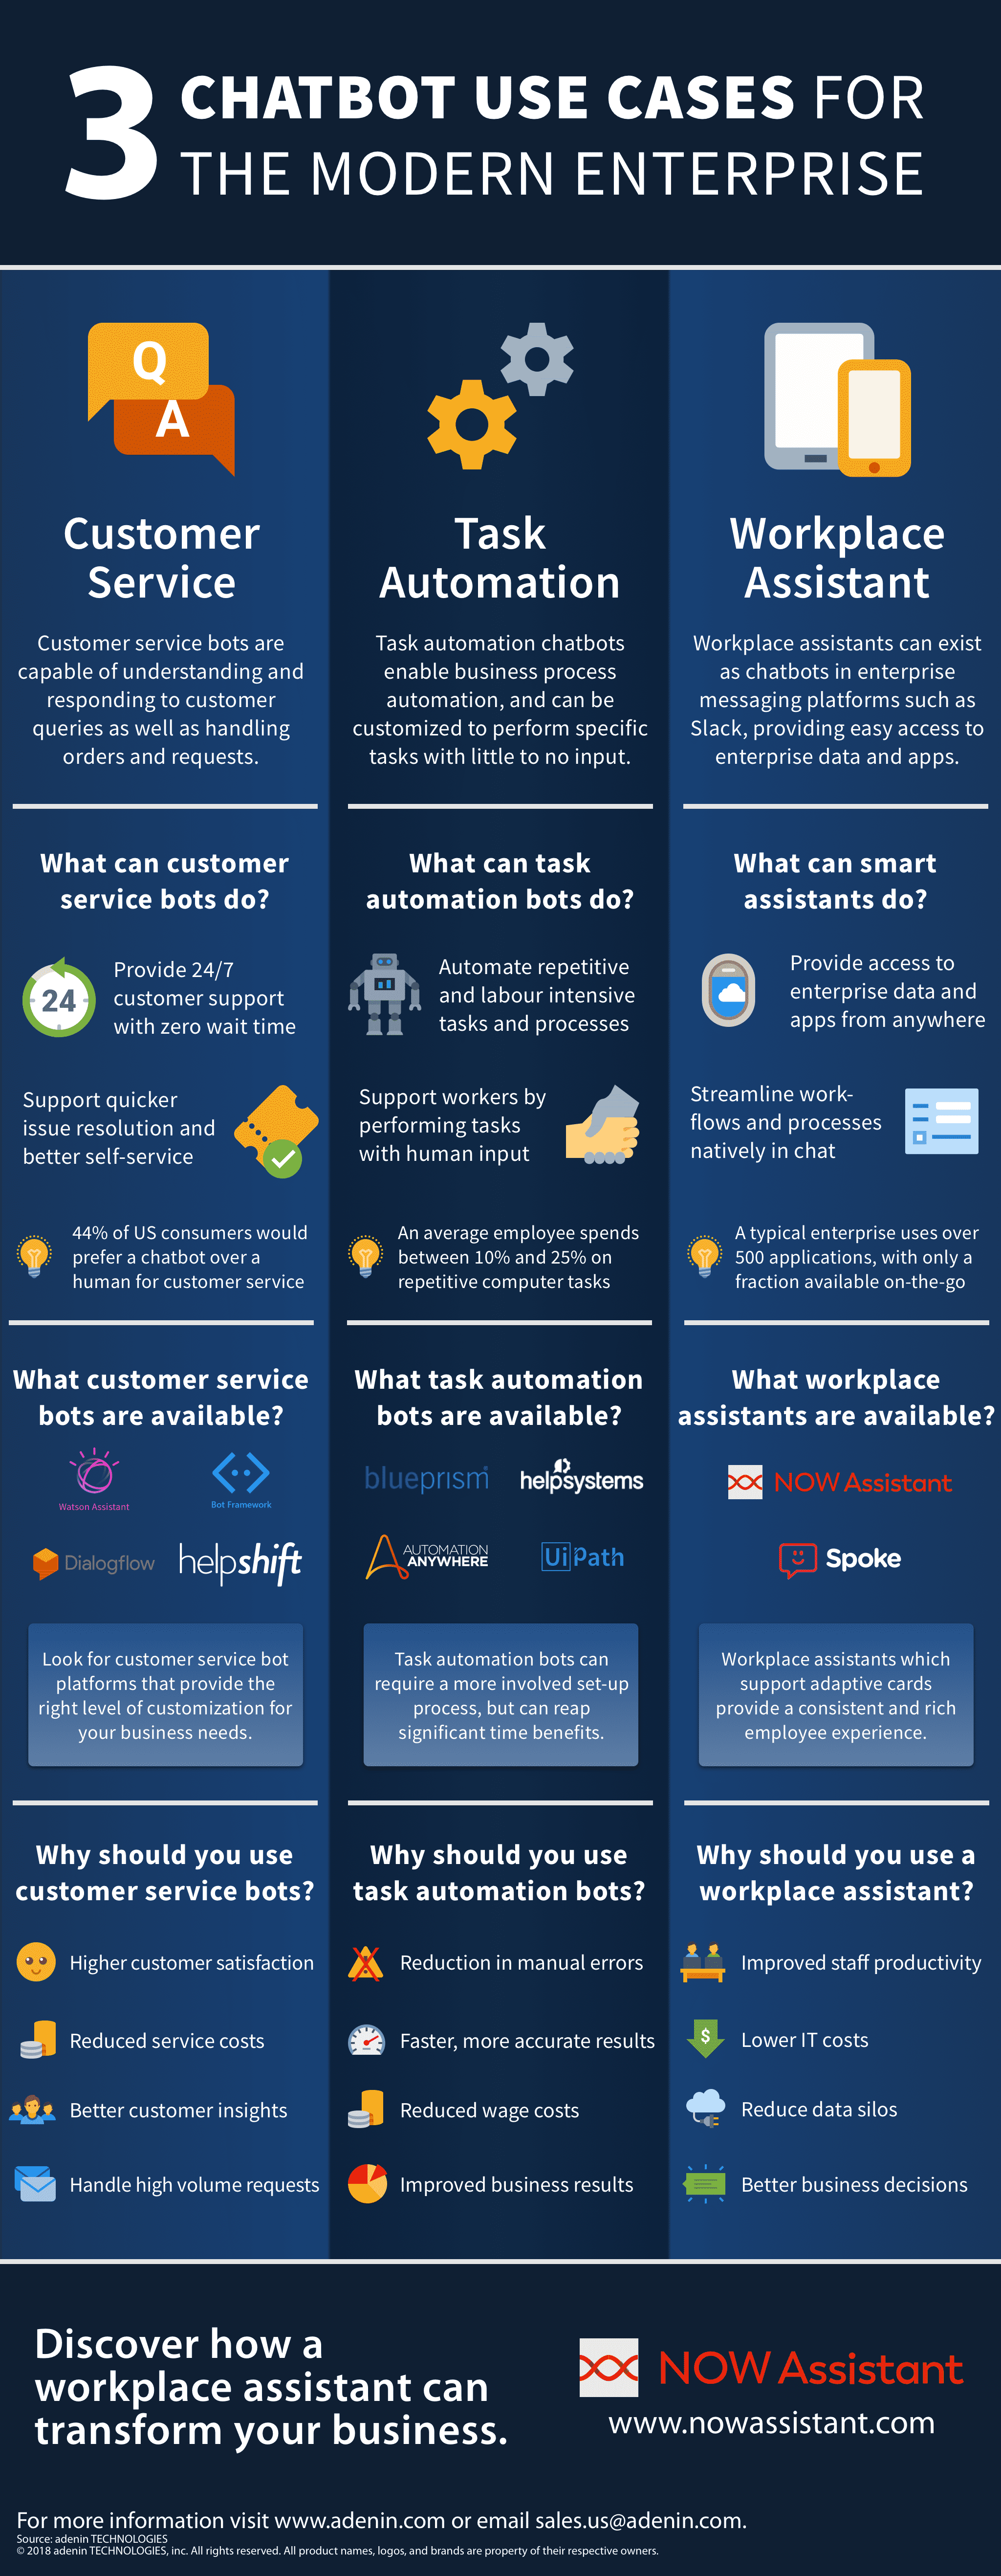 Three Chatbot Use Cases for the Modern Enterprise Infographic